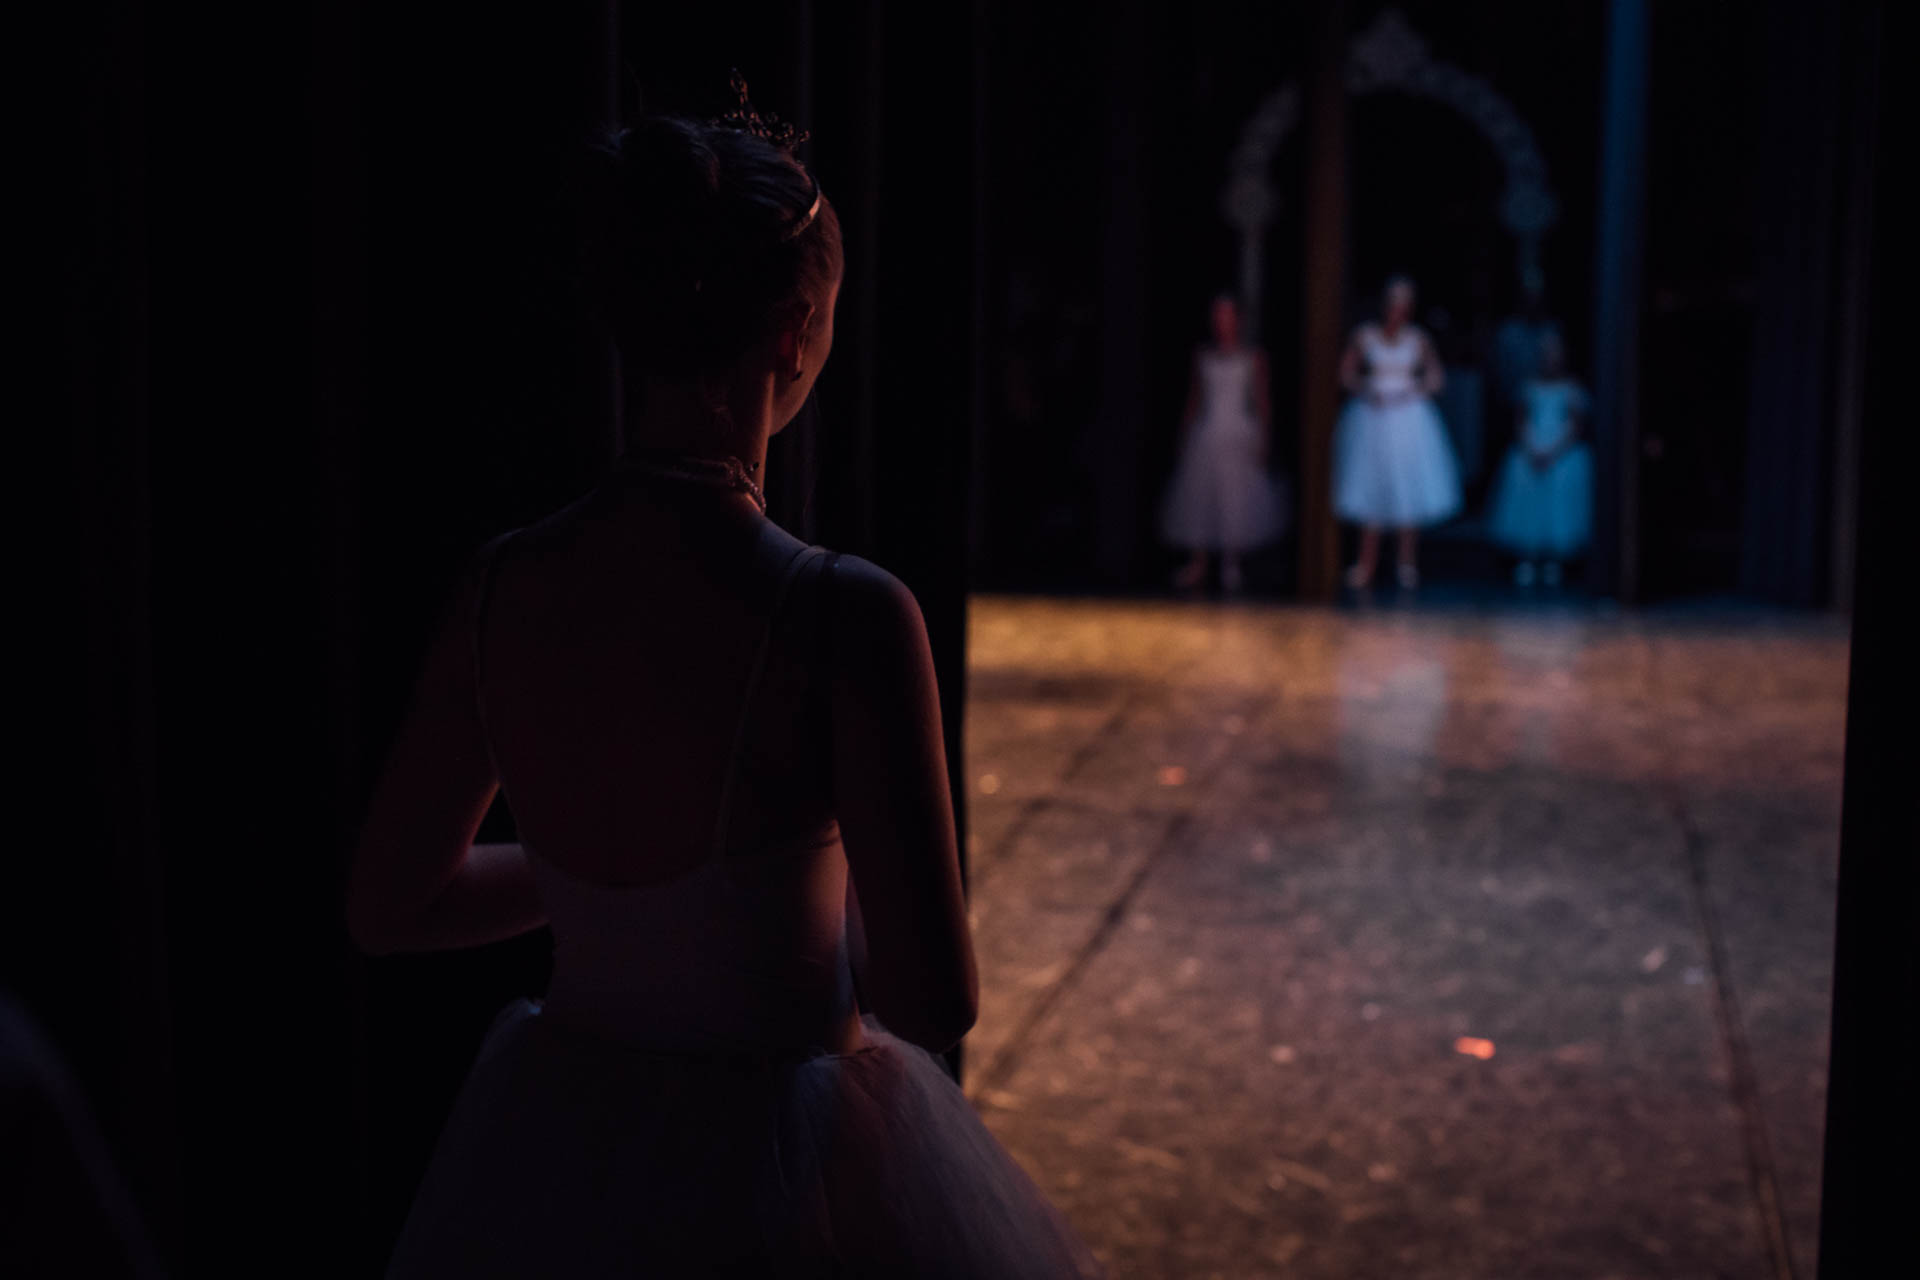 nutcracker-ballerinas-behind-curtain-3420